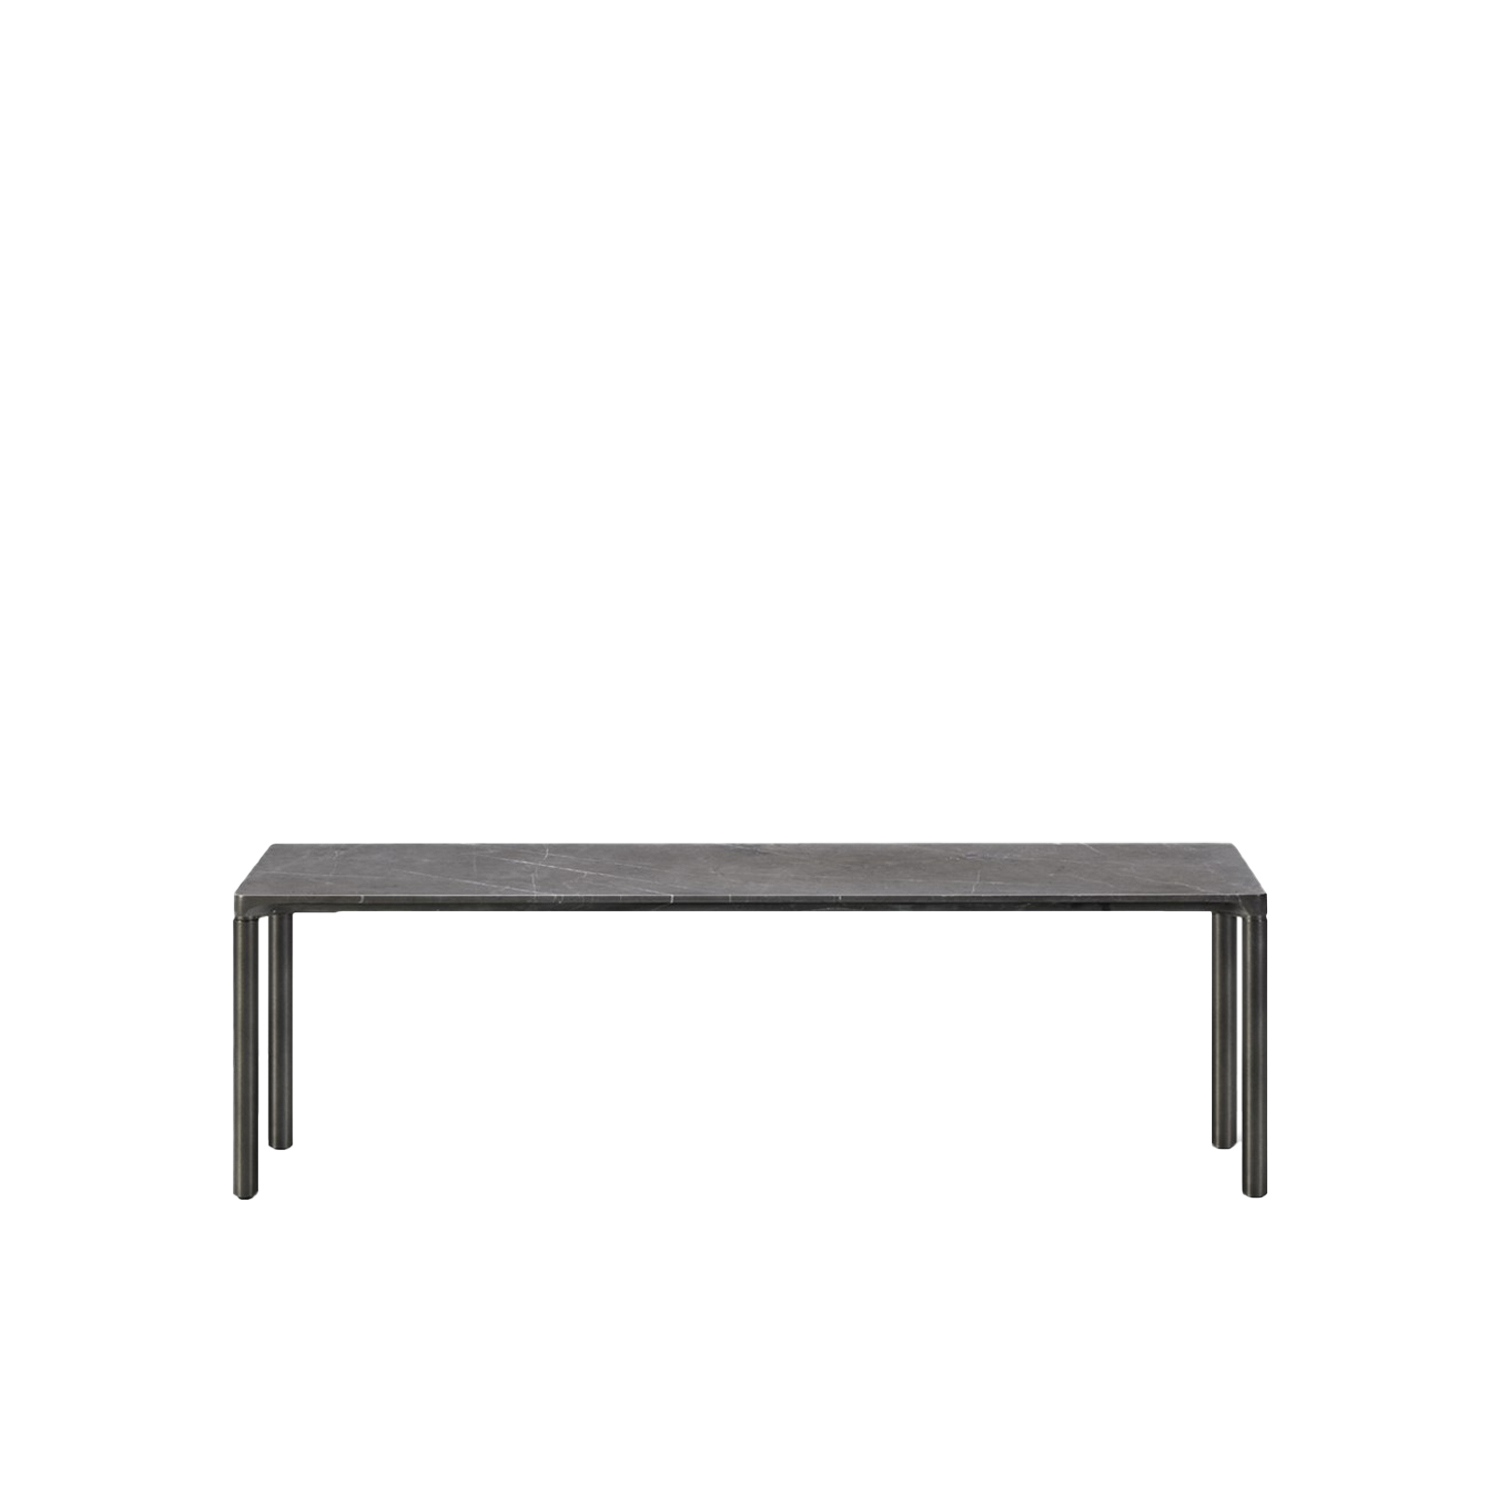 Piloti 6745 Stone Coffee Table - With its simple, unadorned silhouette and slender profile, Piloti in stone exudes a unique kind of elegance. The extra appeal is all about the subtle detailing of the table top´s edge ensuring a seamless transition to the legs which merge into a balanced entity. The impression is a single line floating on four delicate legs. The Piloti in Stone tables all have the same height, which makes them ideal to place individually or together in a space to create a sense of continuity.  Adding to Piloti's tangible materiality is our Piloti Stone variant, featuring a stone table top supported by steel legs. Each table top is one-of-a-kind, with its own subtle differences in surface patterns and tonalities. We've applied our expertise in craftsmanship to create a unique profile never seen before in this type of stone table. The sleek marble top transitions gracefully with the sturdy cylindrical legs. The result is a seamless visual impression that makes Piloti in Stone an ideal statement piece, whether for private homes, hotels or executive settings. | Matter of Stuff